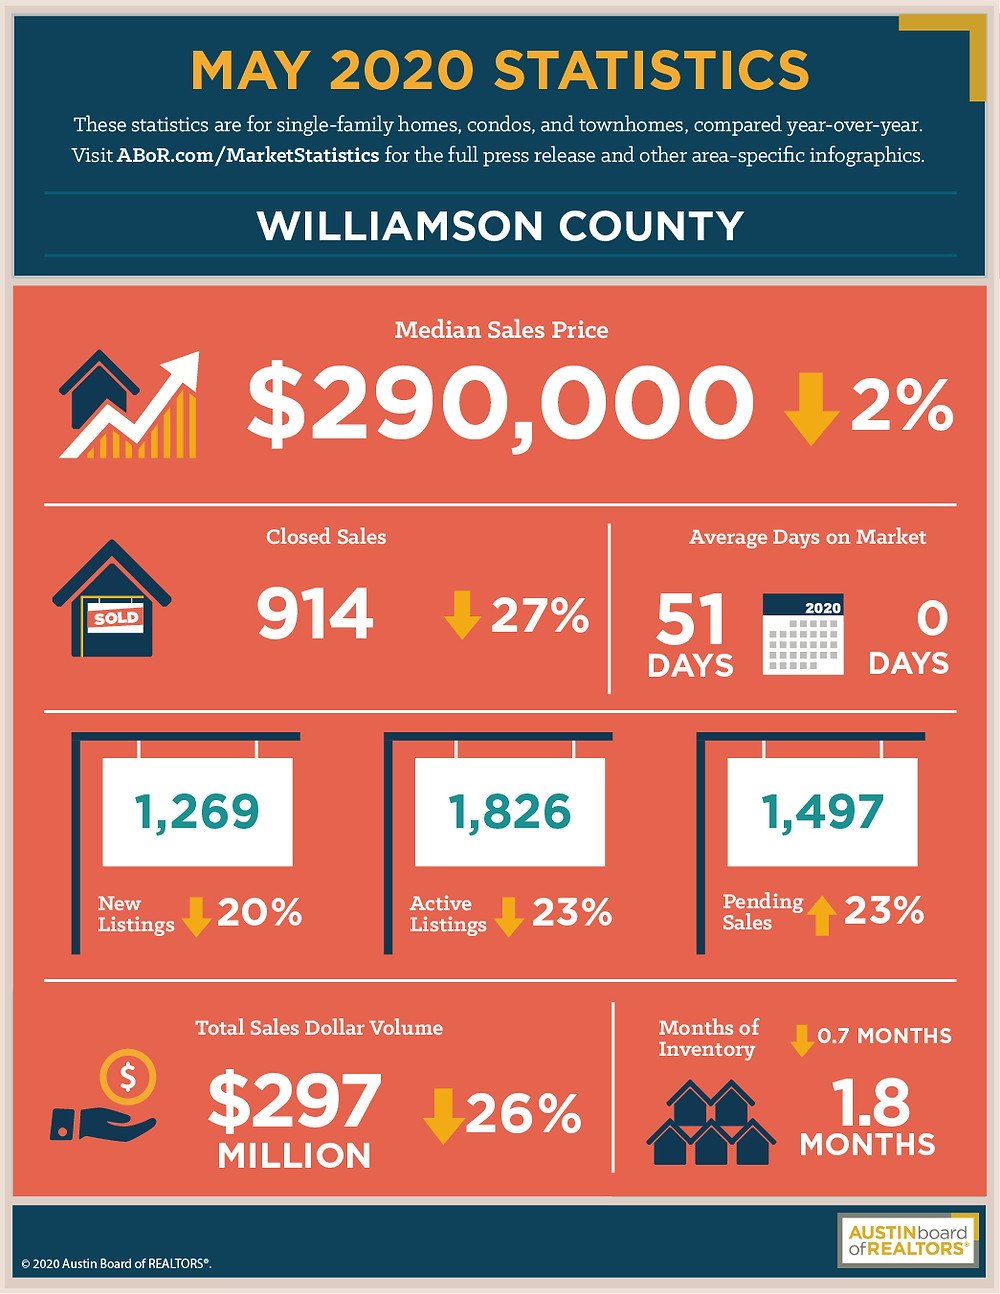 May 2020 Housing Statistics For Williamson County, Texas